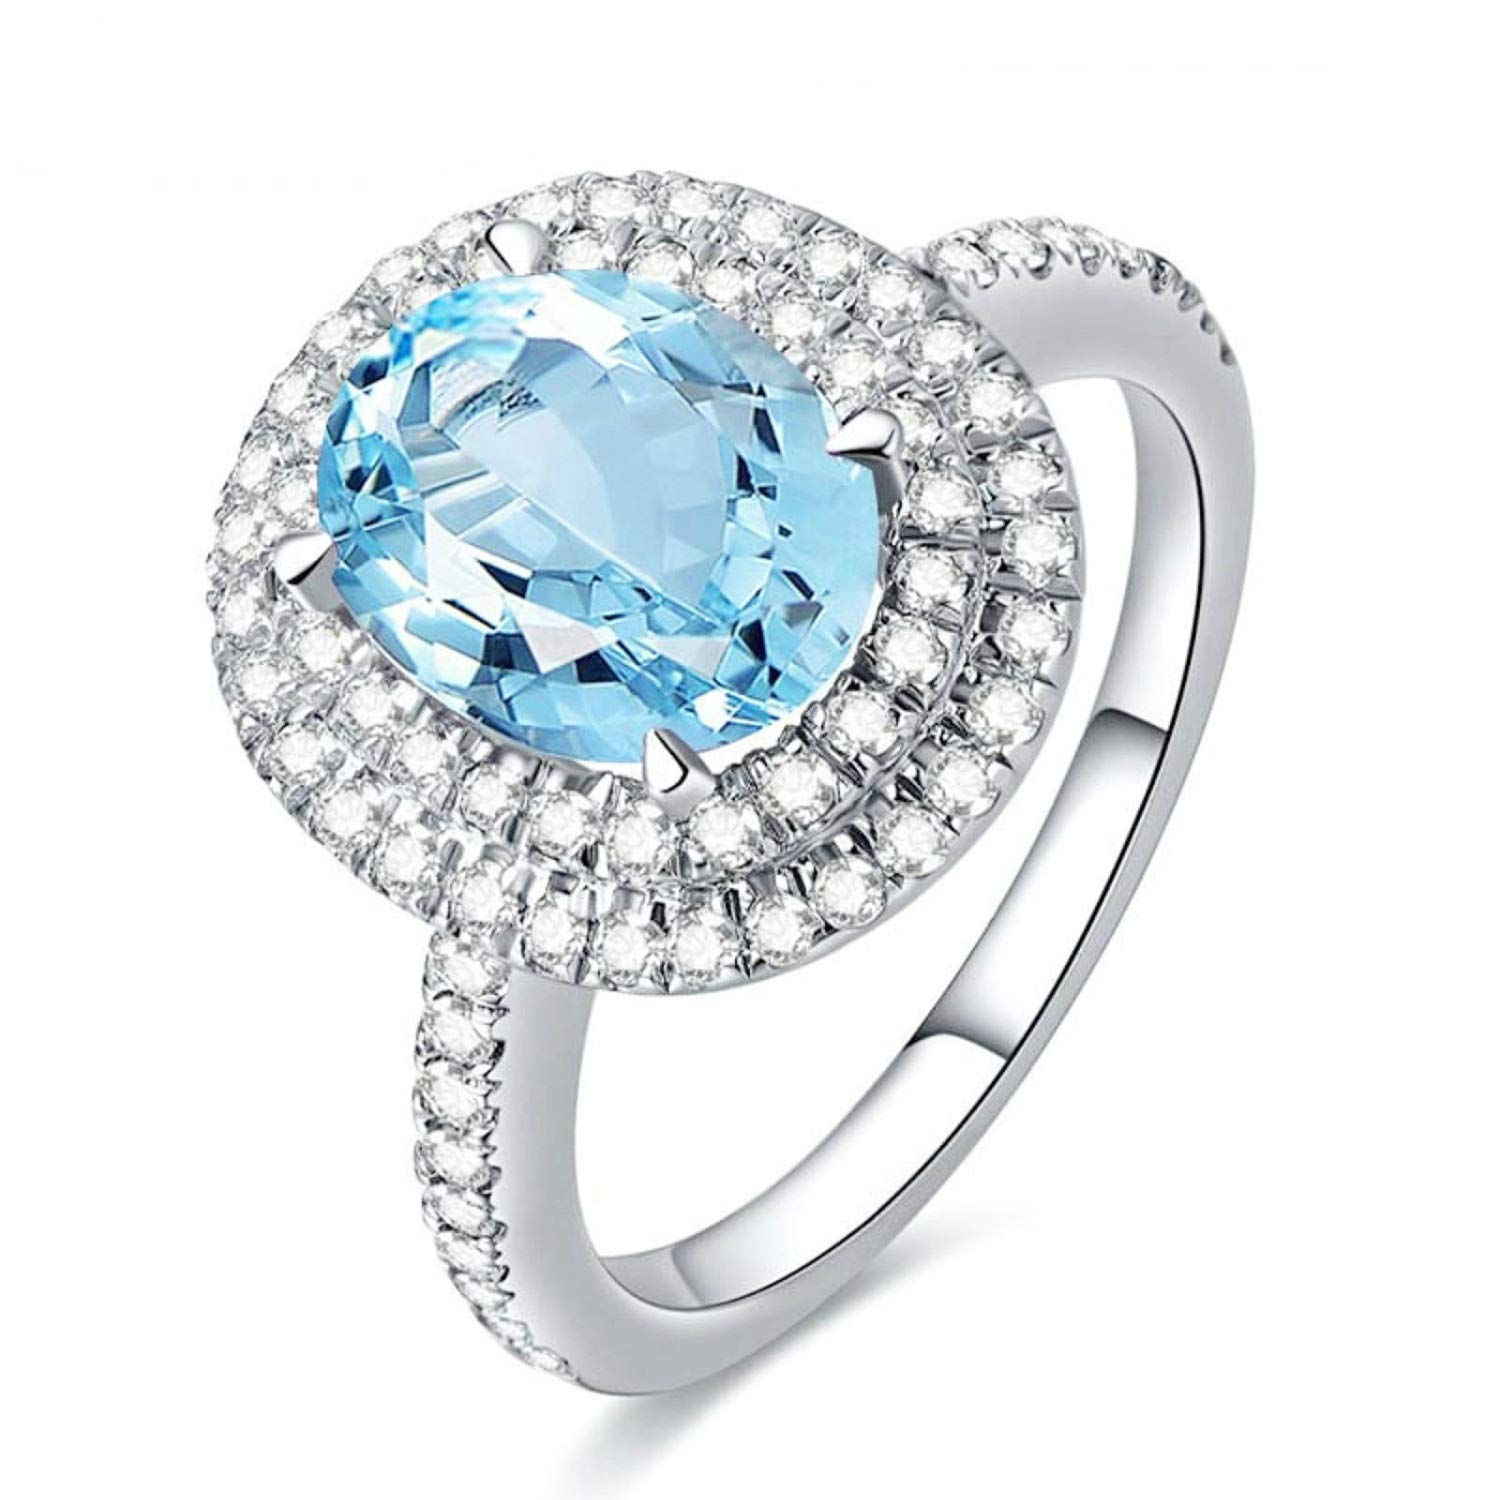 AMDXD Jewelry 925 Sterling Silver Anniversary Rings Women Blue Oval Cut Topaz Oval Rings